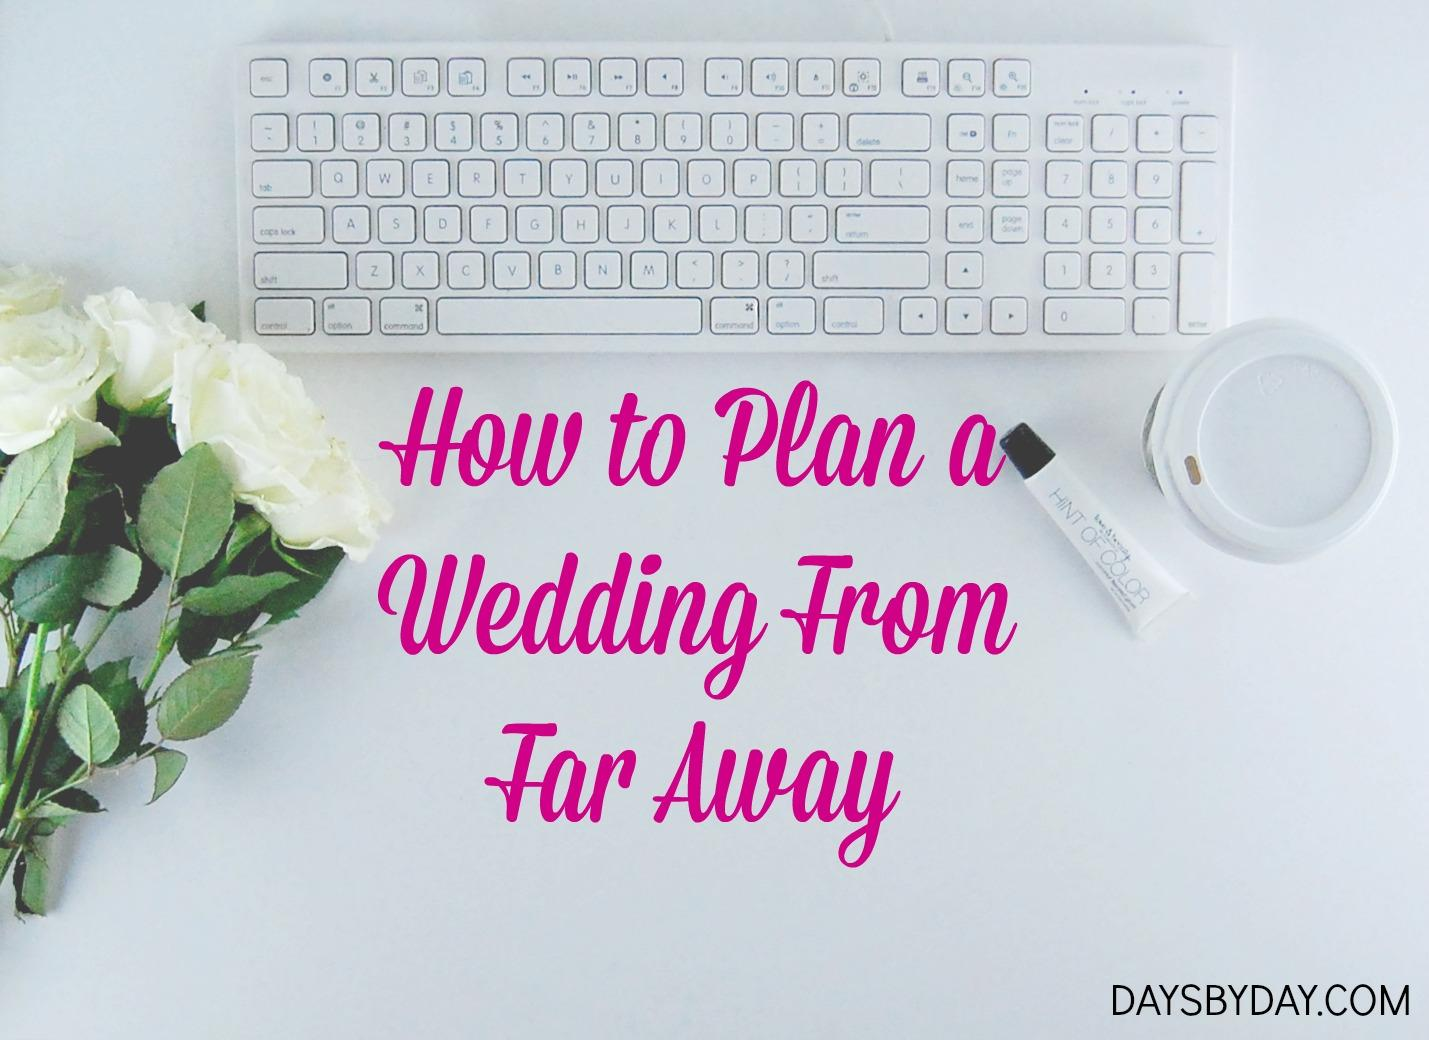 How to Plan a Wedding From Far Away